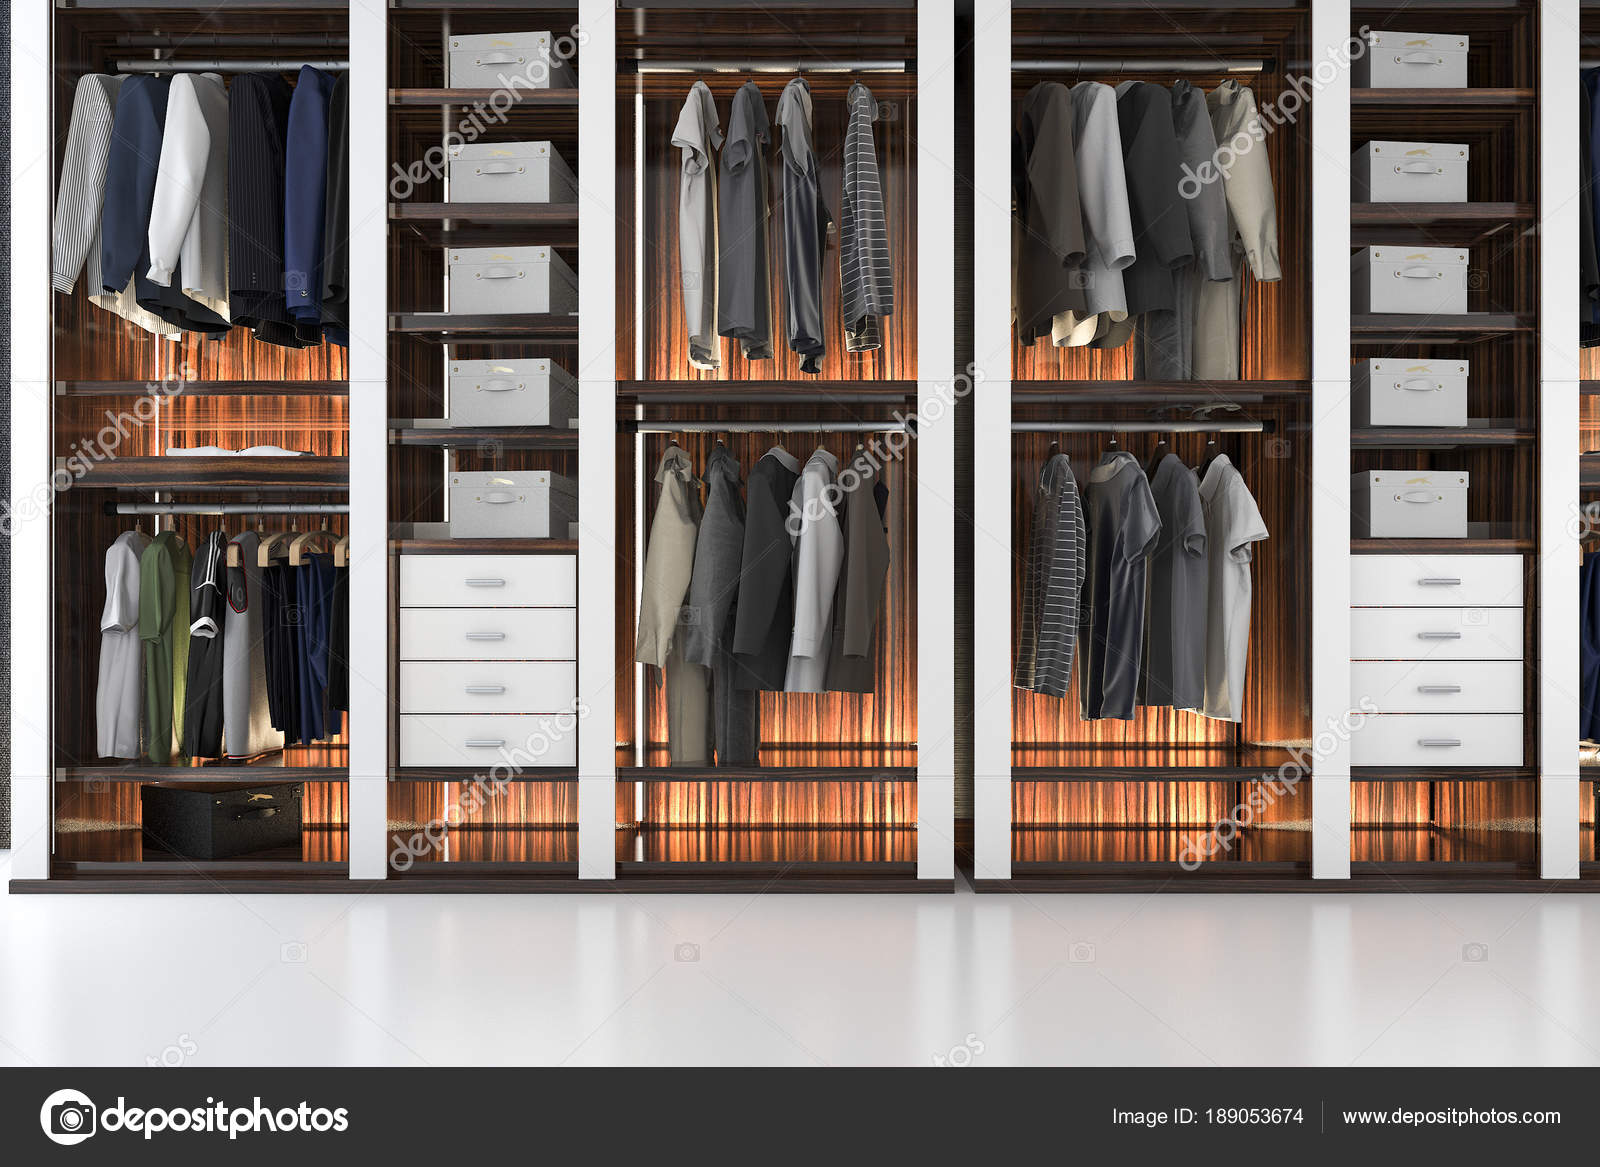 3d Rendering Modern Scandinavian White Wood Walk In Closet With Wardrobe Photo By Dit26978